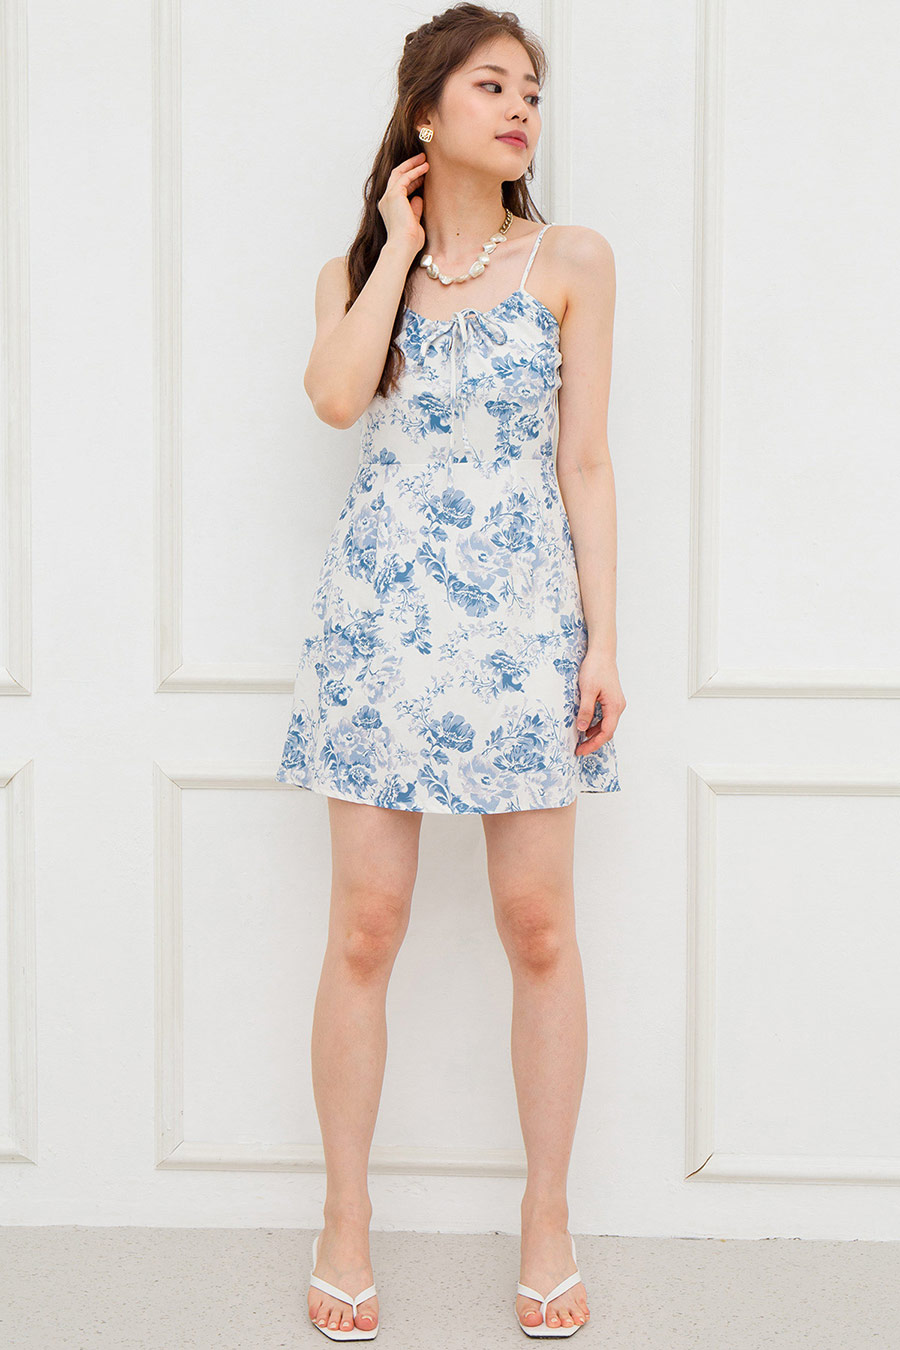 *BO* IRENE DRESS - PORCELAIN